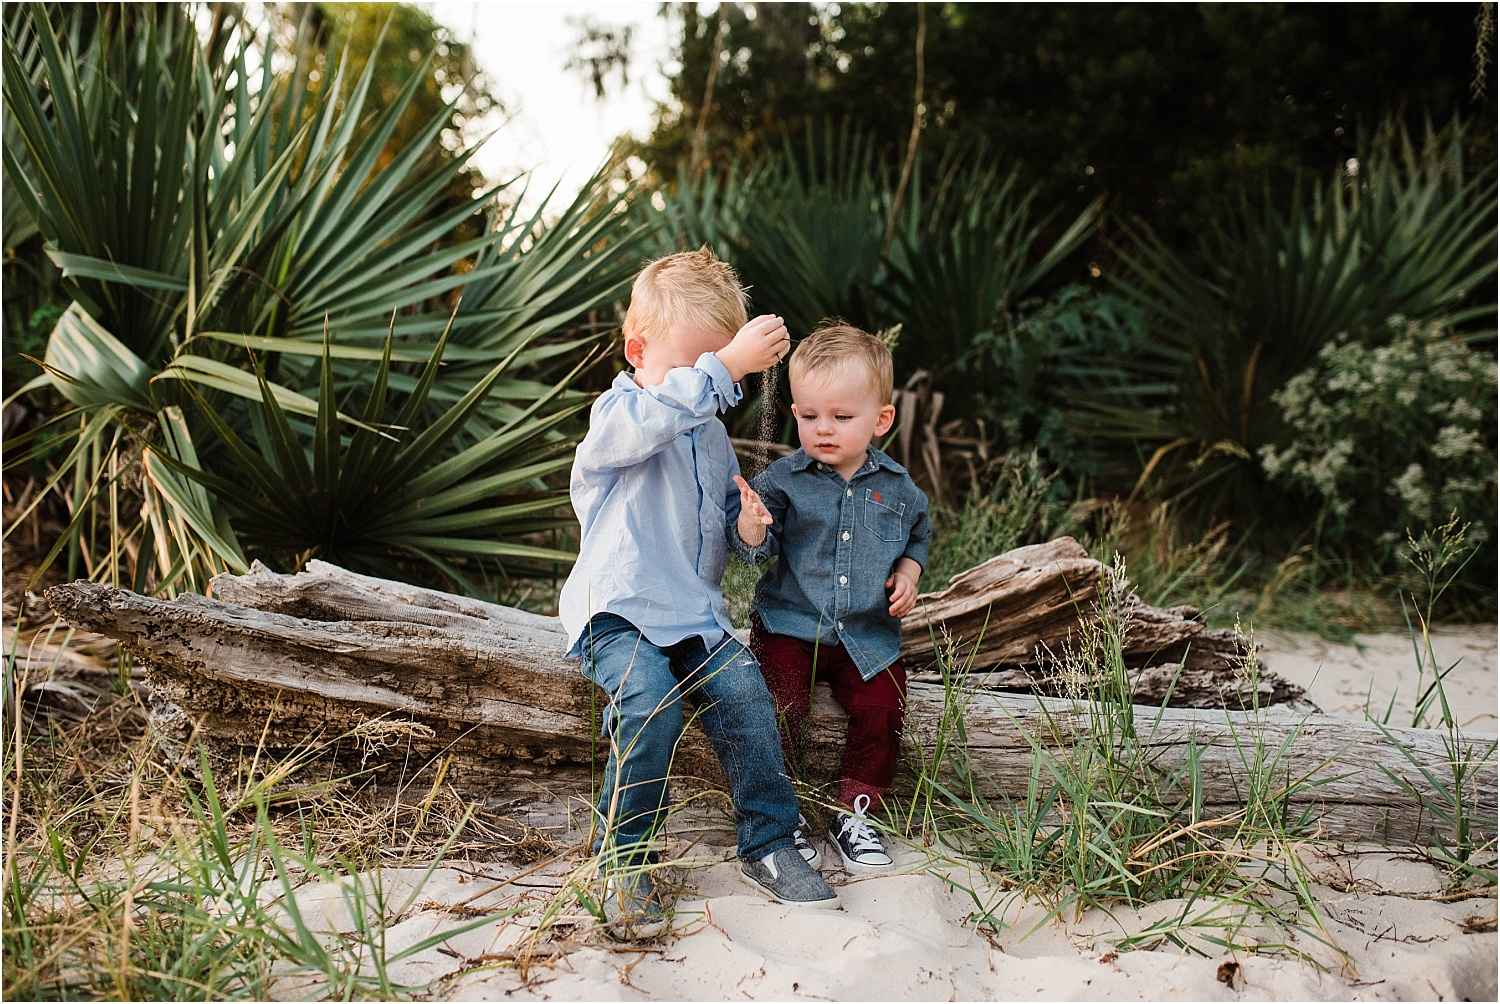 Smalley Family Fall 2019-Fountainbleau-State-Park-Family-Photos_Gabby Chapin Photography_0106_BLOG.jpg